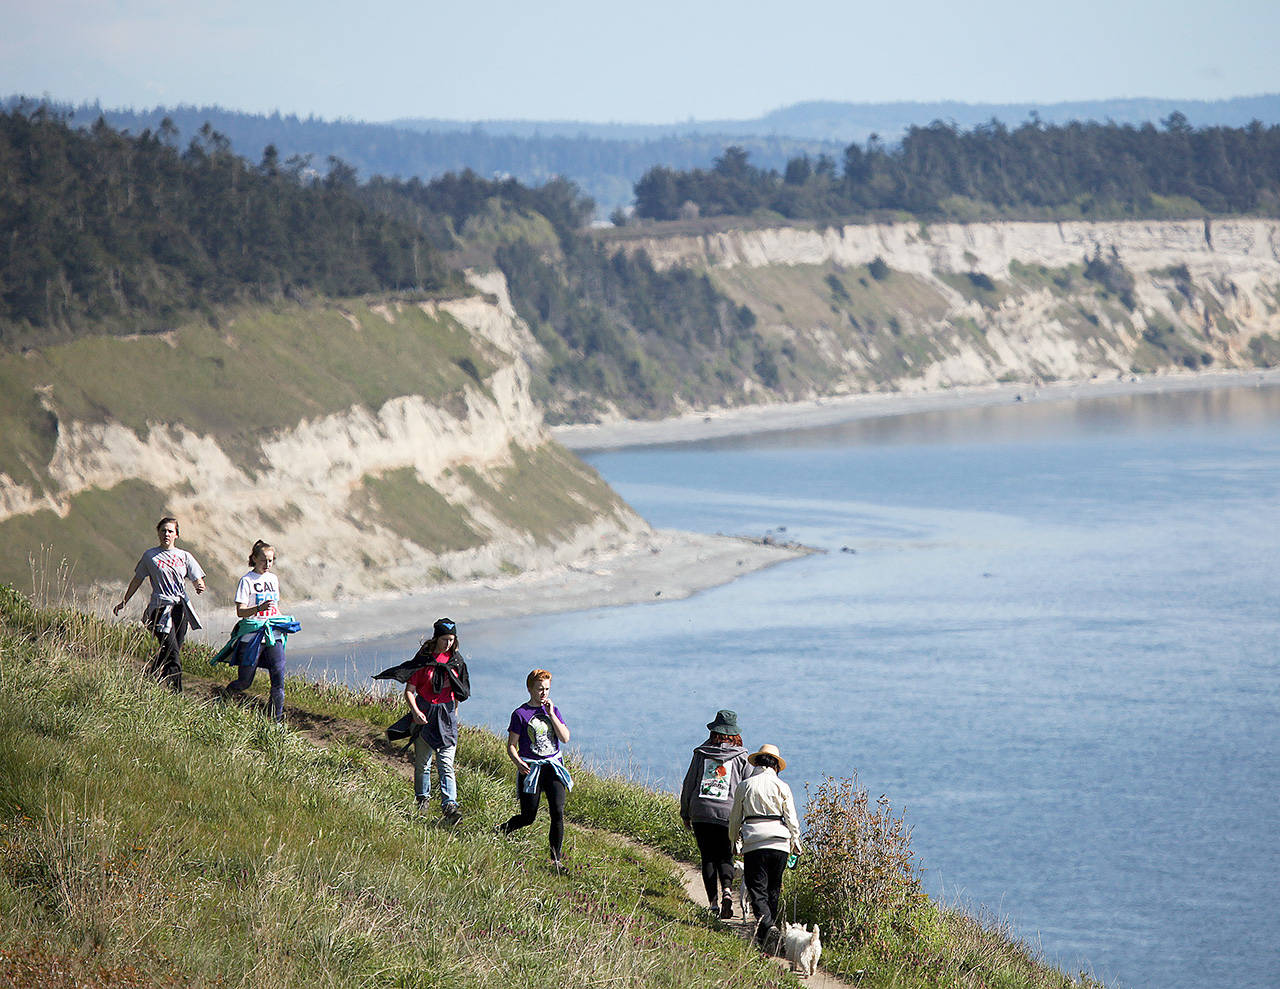 Hikers make their way along the Bluff Trail at Ebey's Landing near Coupeville on Whidbey Island. At its highest point, the bluff sits about 260 feet above sea level, providing stunning views of the Strait of Juan de Fuca and Olympic Mountains. (Ian Terry / Herald file)